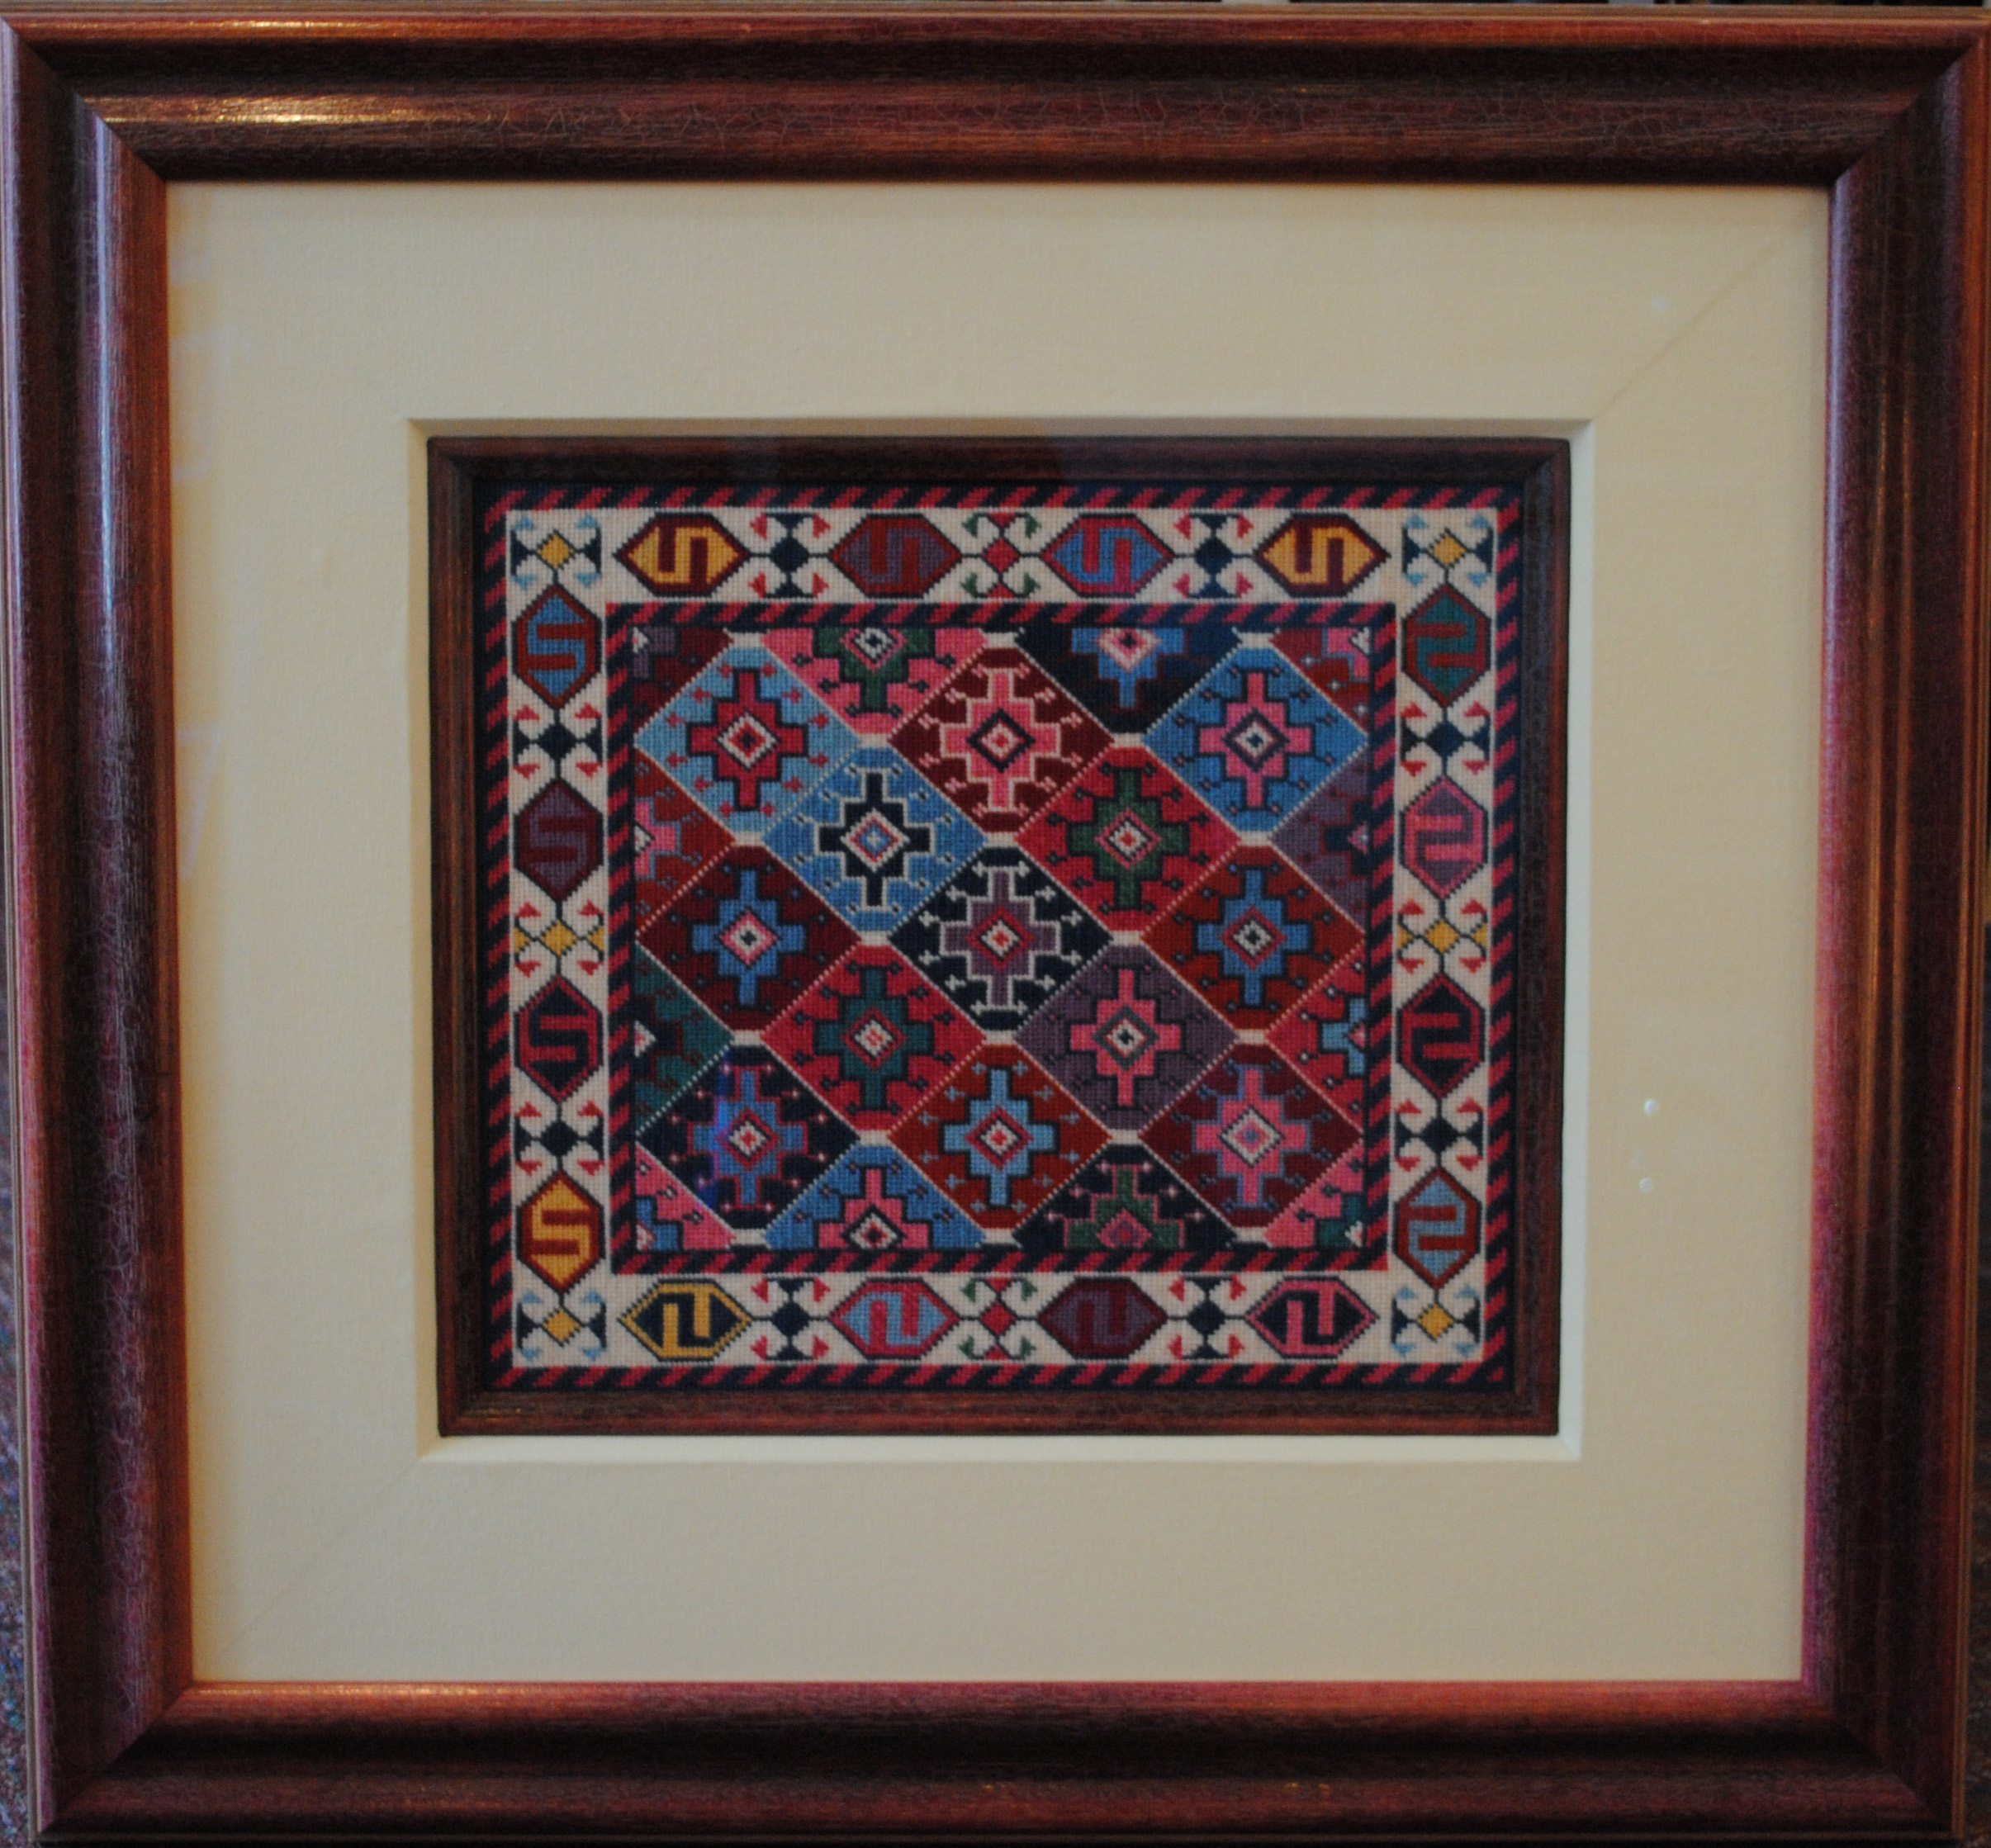 Antique Rug Needlepoint Reproduction - Village Frame & Gallery